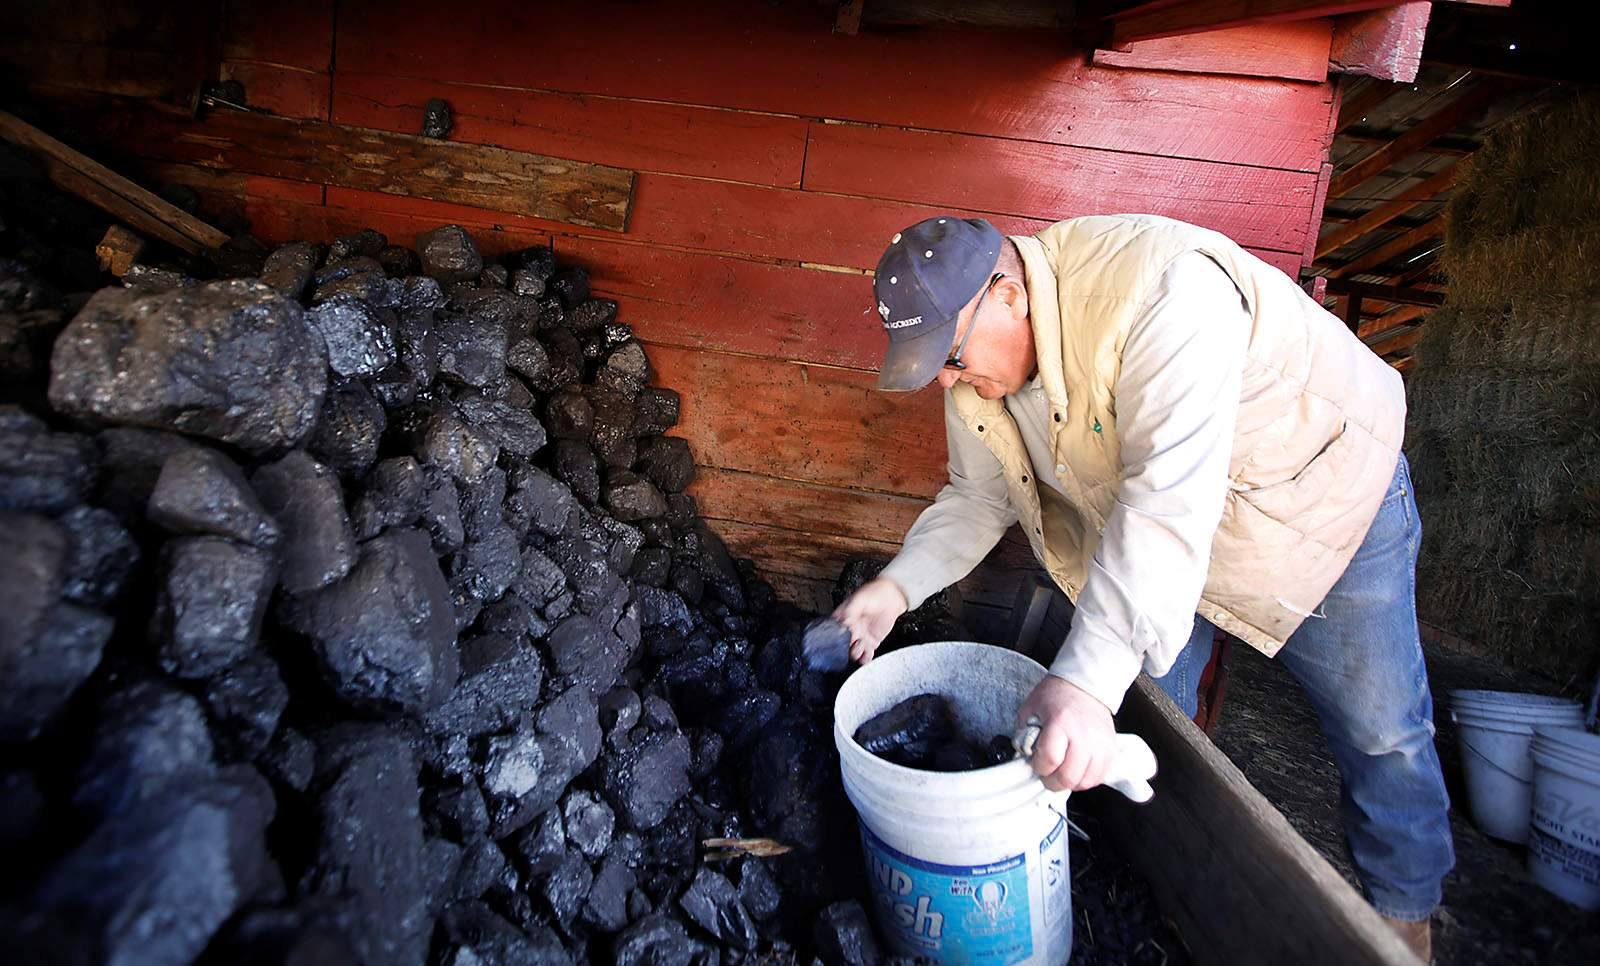 Monte Miller Purchases Coal From Hay Gulch Coal In La Plata County To Heat  His Home South Of Bayfield. Coal Provides An Economical Source Of Heat  Through ...